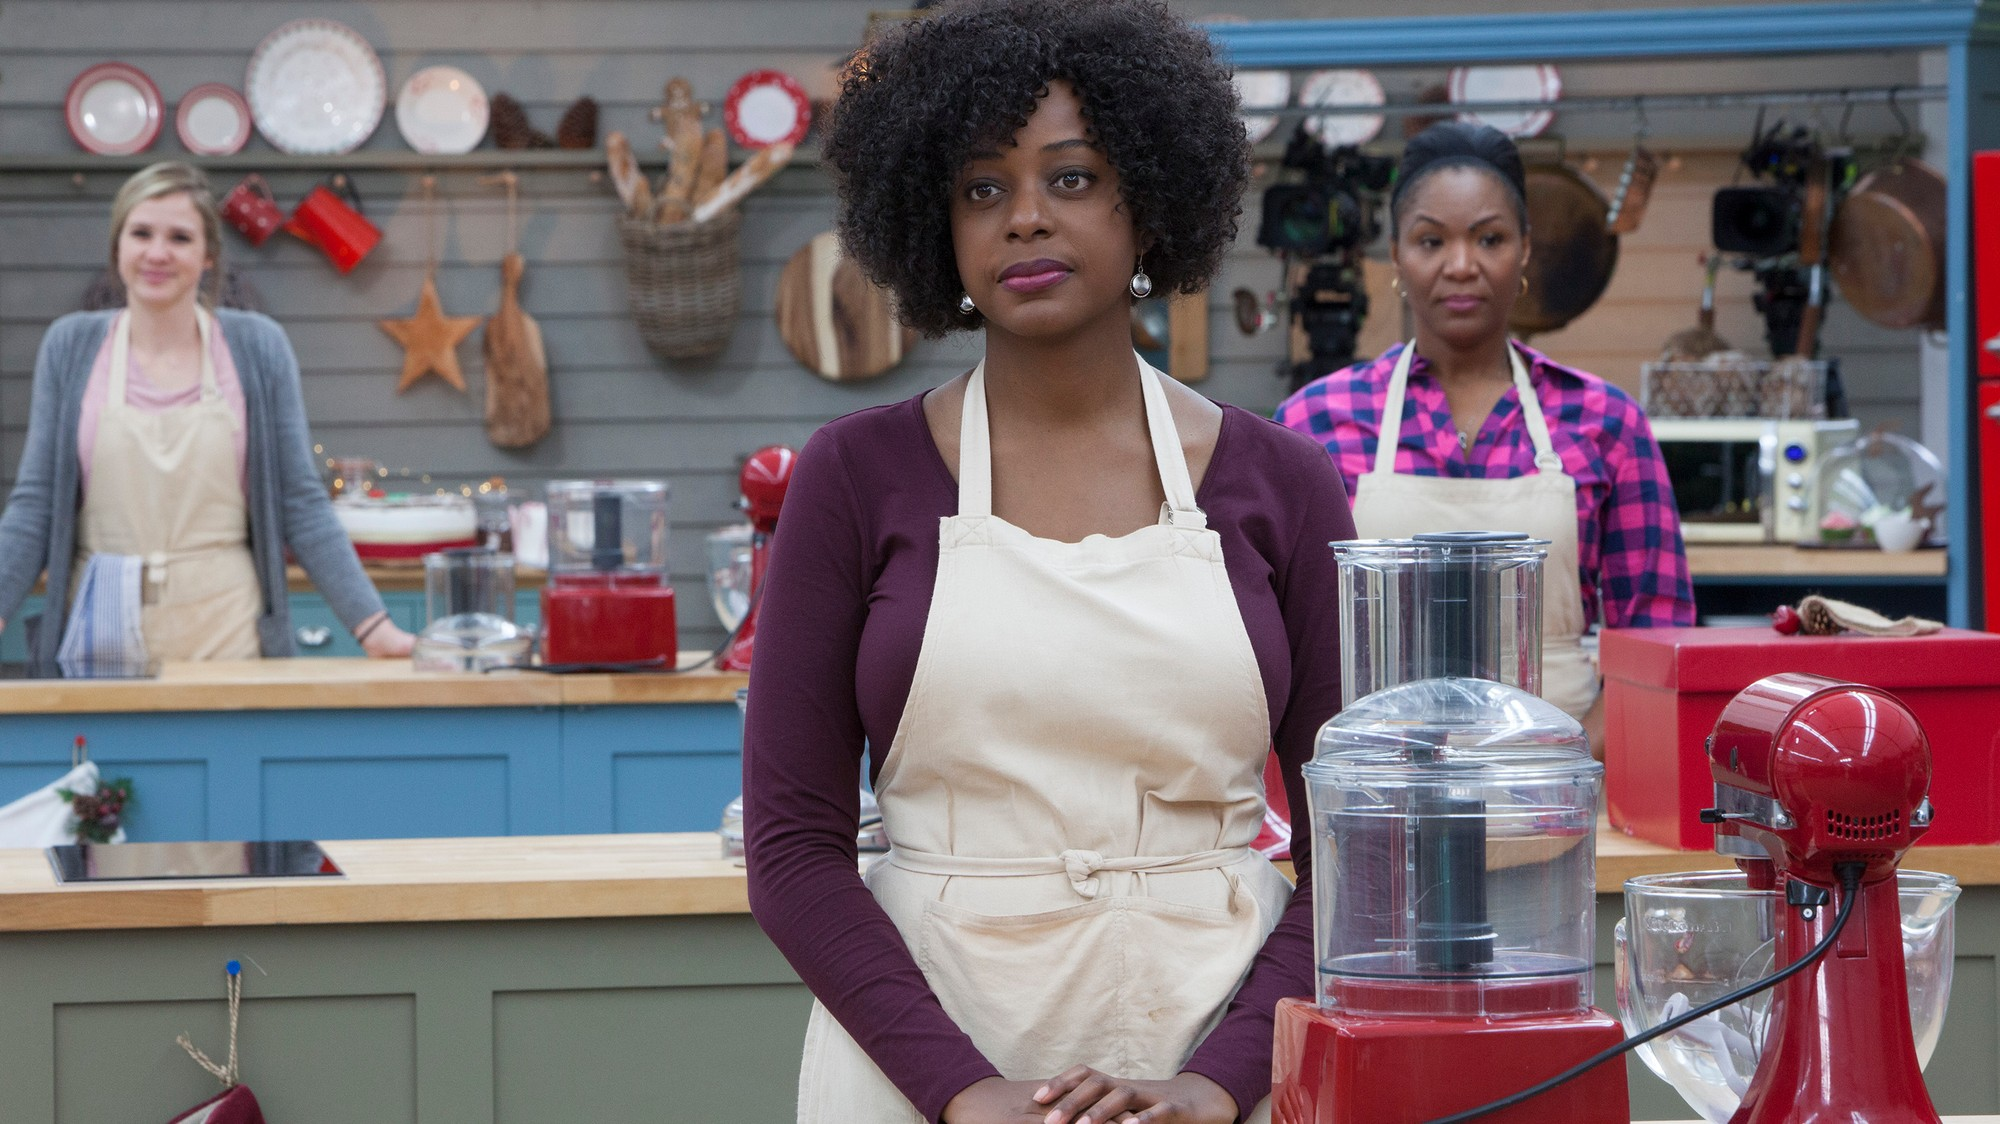 We Spoke to the Winner of the 'Great American Baking Show